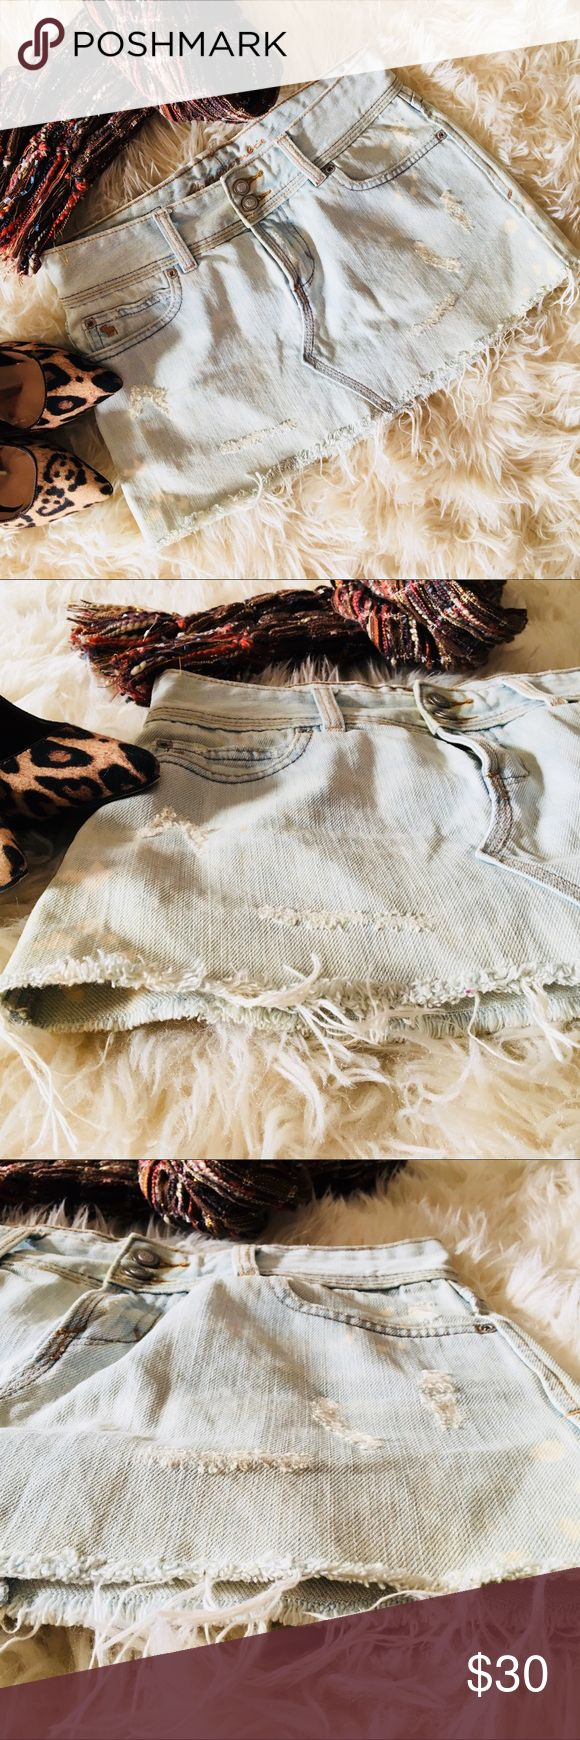 """Abercrombie ❦ Stonewashed Distressed Denim Skirt Stonewashed distressed stretch denim skirt by Abercrombie & Fitch. (White/bleached spots are part of the design and aren't a defect.) Part of a set with matching denim jacket. Looks great with anything white or spice it up with animal print pumps! Also looks awesome with brown boots! Rarely worn. Perfect condition.  ❦ Length: 10.5"""" ❦ Waist: 14"""" across ❦ 100% Cotton ❦ Machine wash cold Abercrombie & Fitch Skirts Mini"""